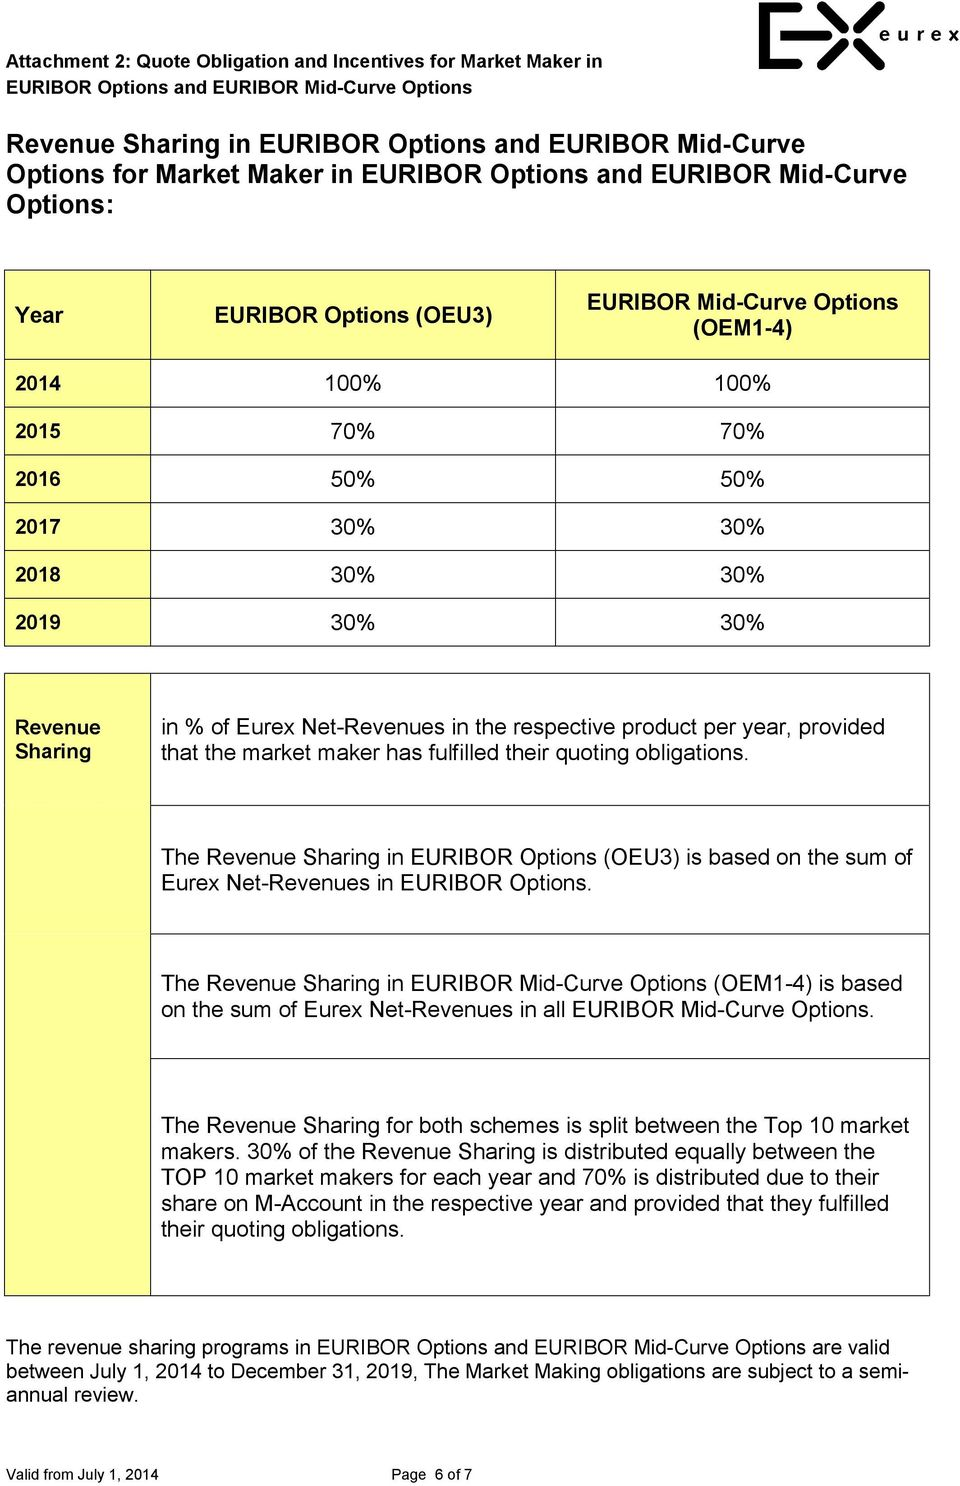 their quoting obligations. The Revenue Sharing in EURIBOR Options (OEU3) is based on the sum of Eurex Net-Revenues in EURIBOR Options.